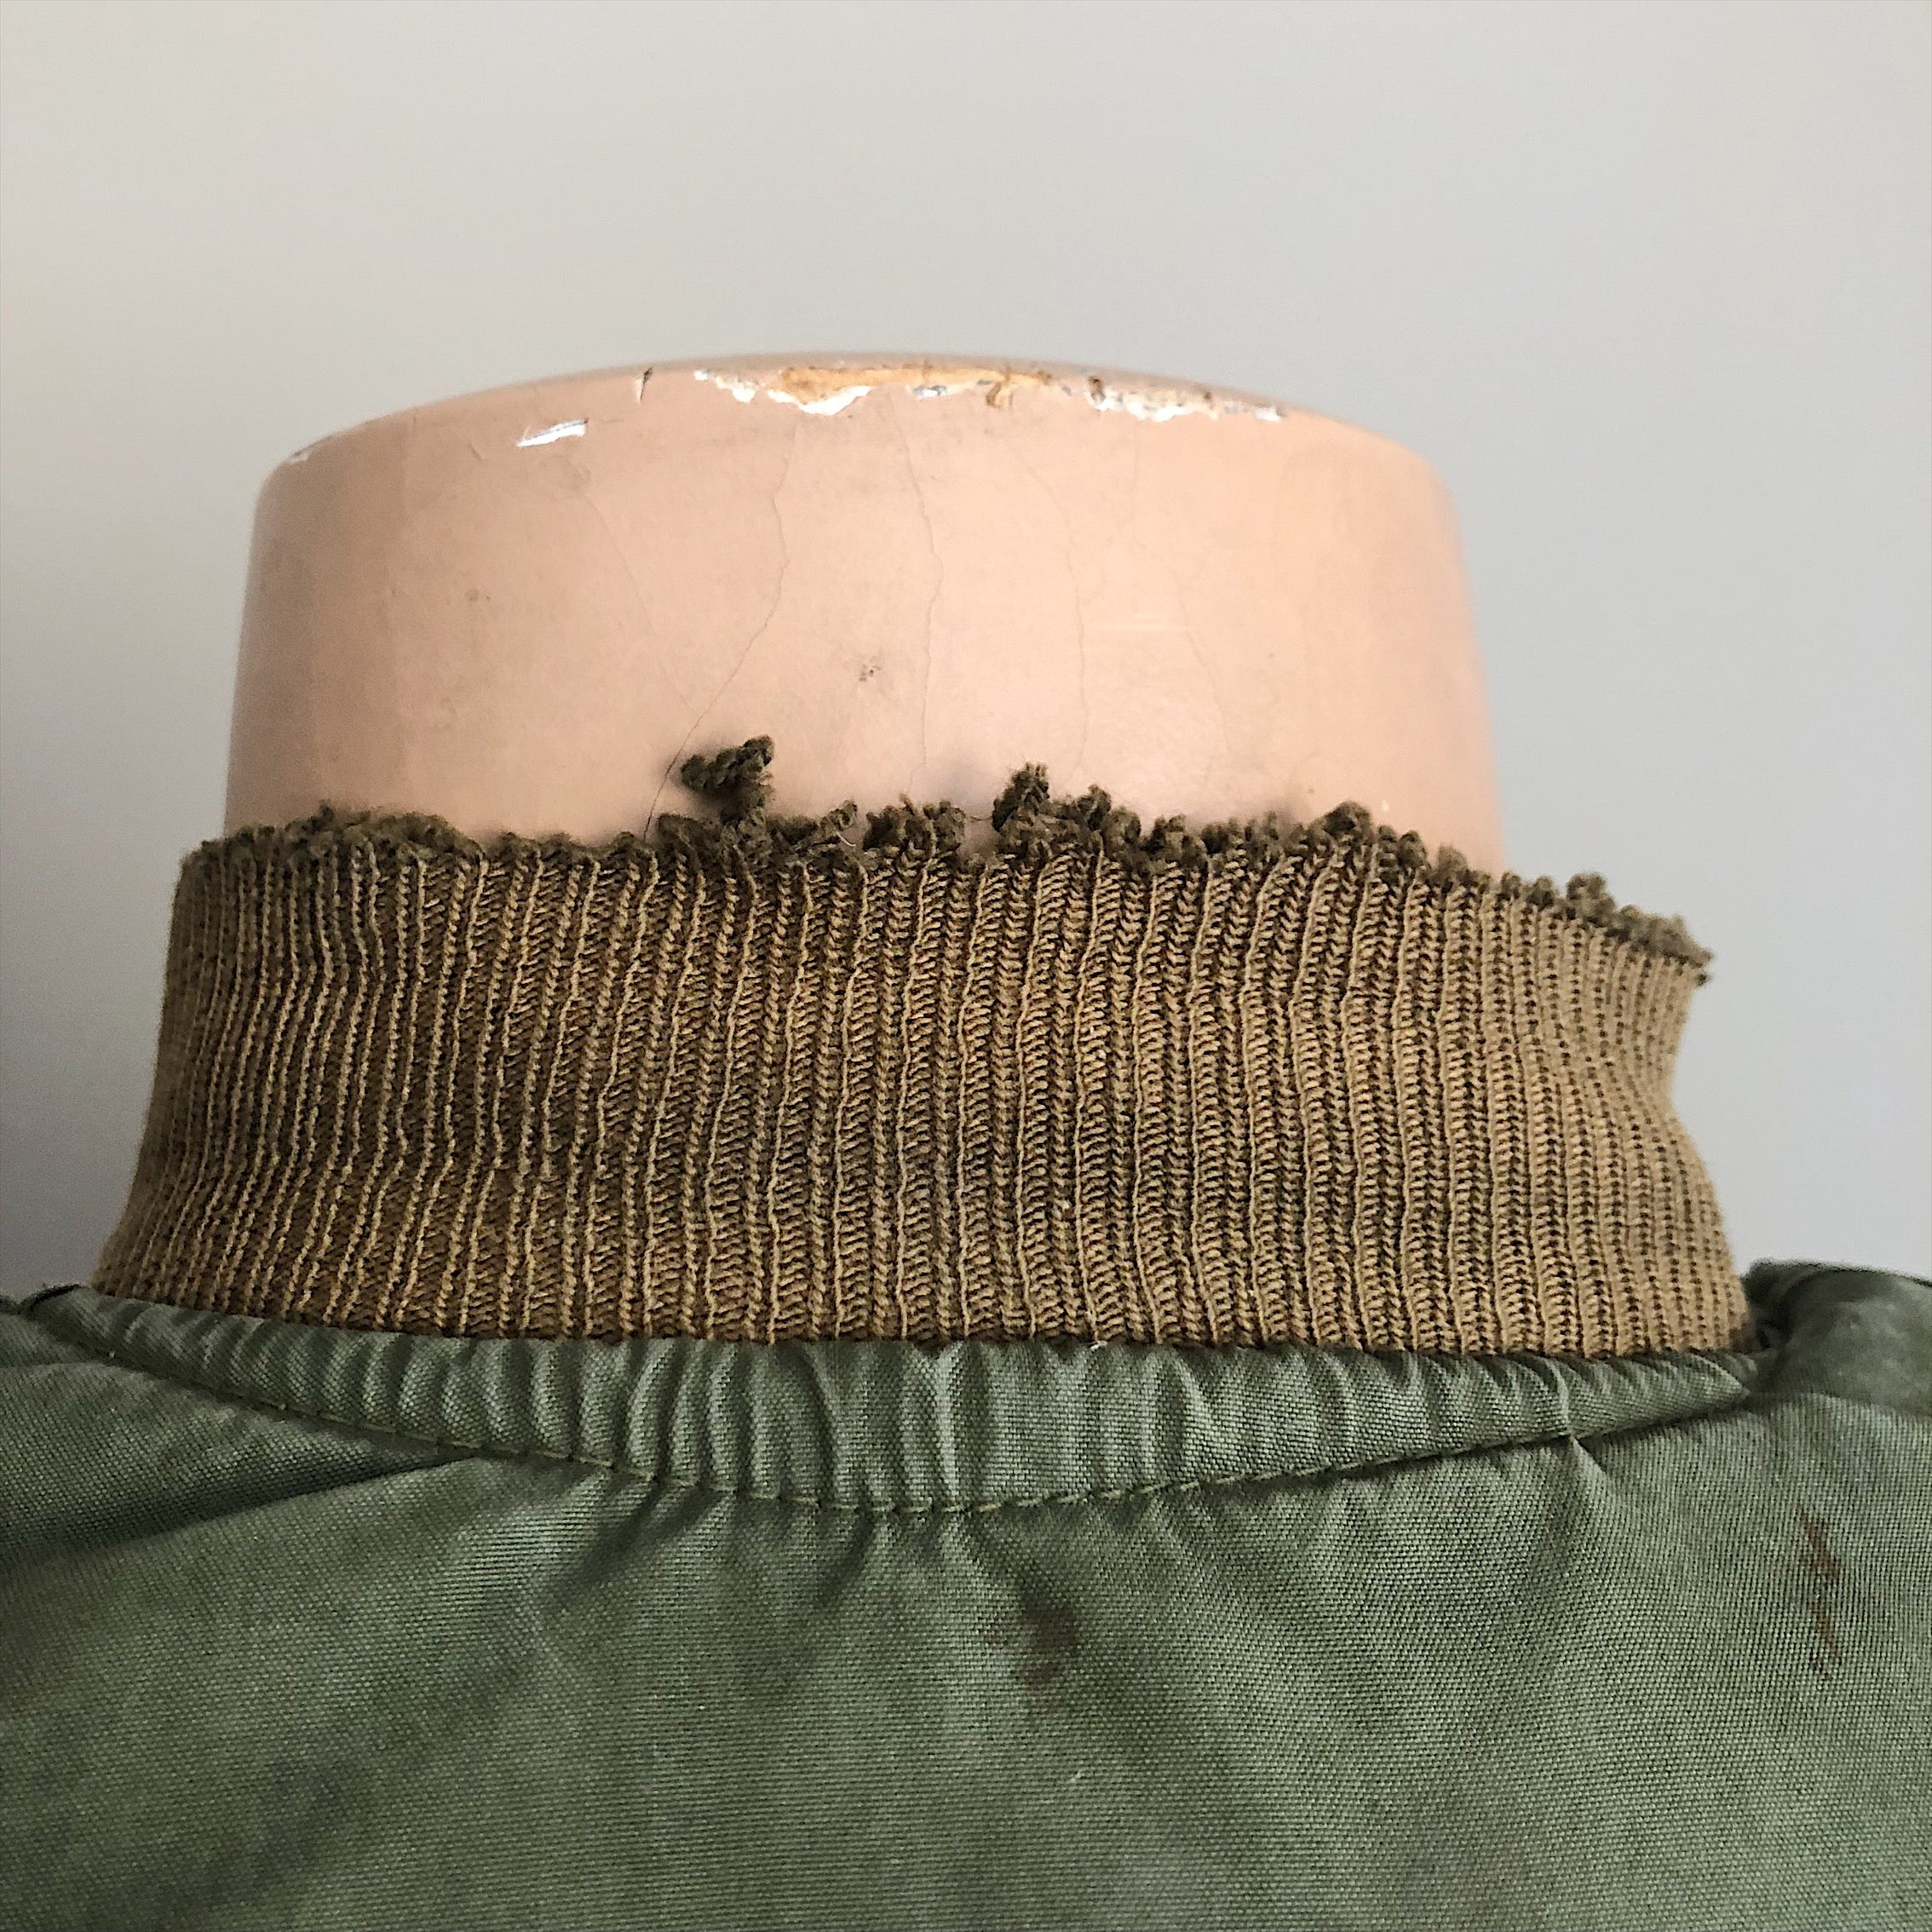 Authentic collar wear from WW2 Tanker Jacket